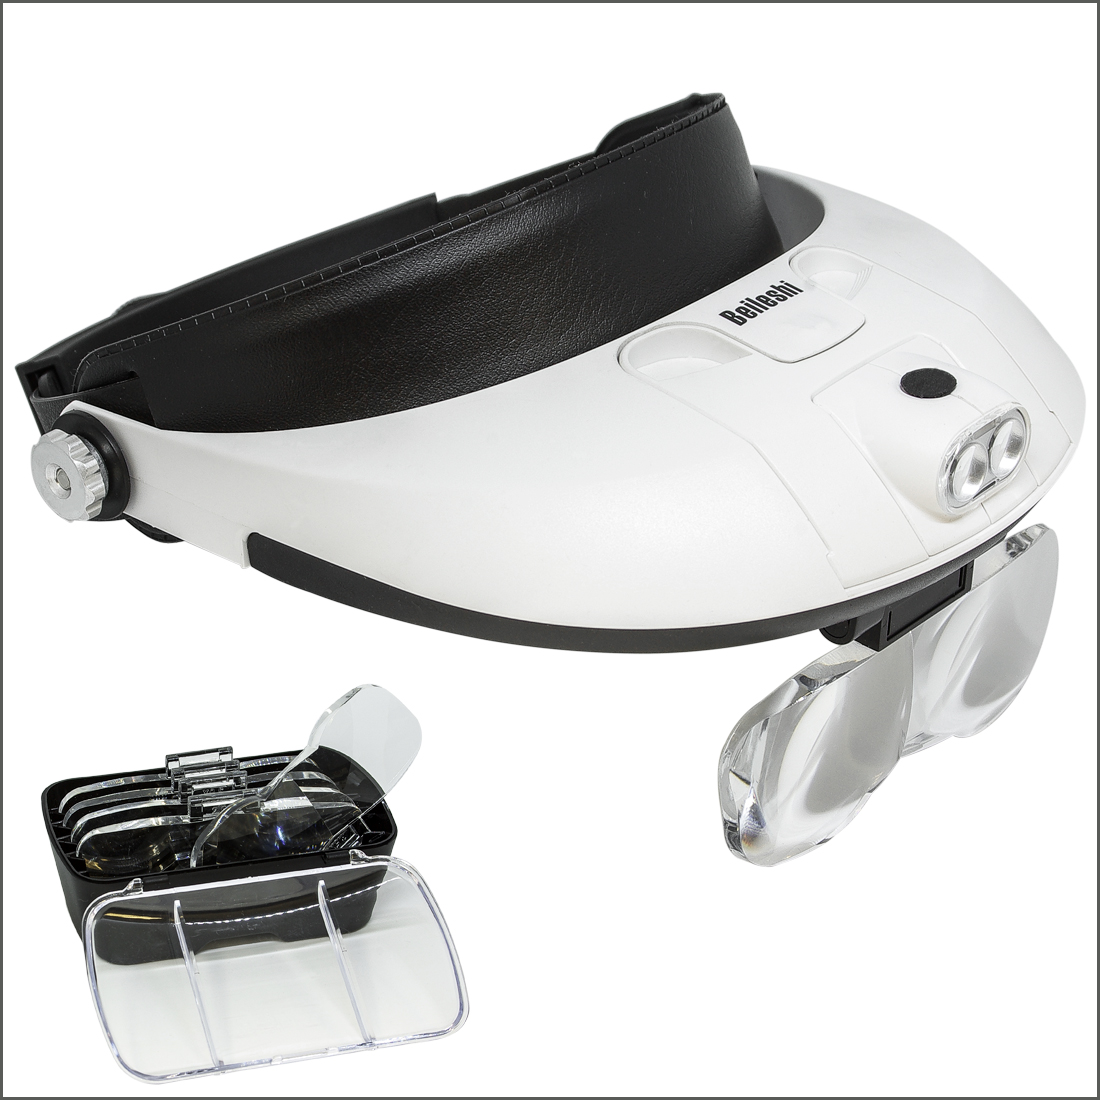 LED Illunminating Headband Magnifier with 5 interchangable lenses